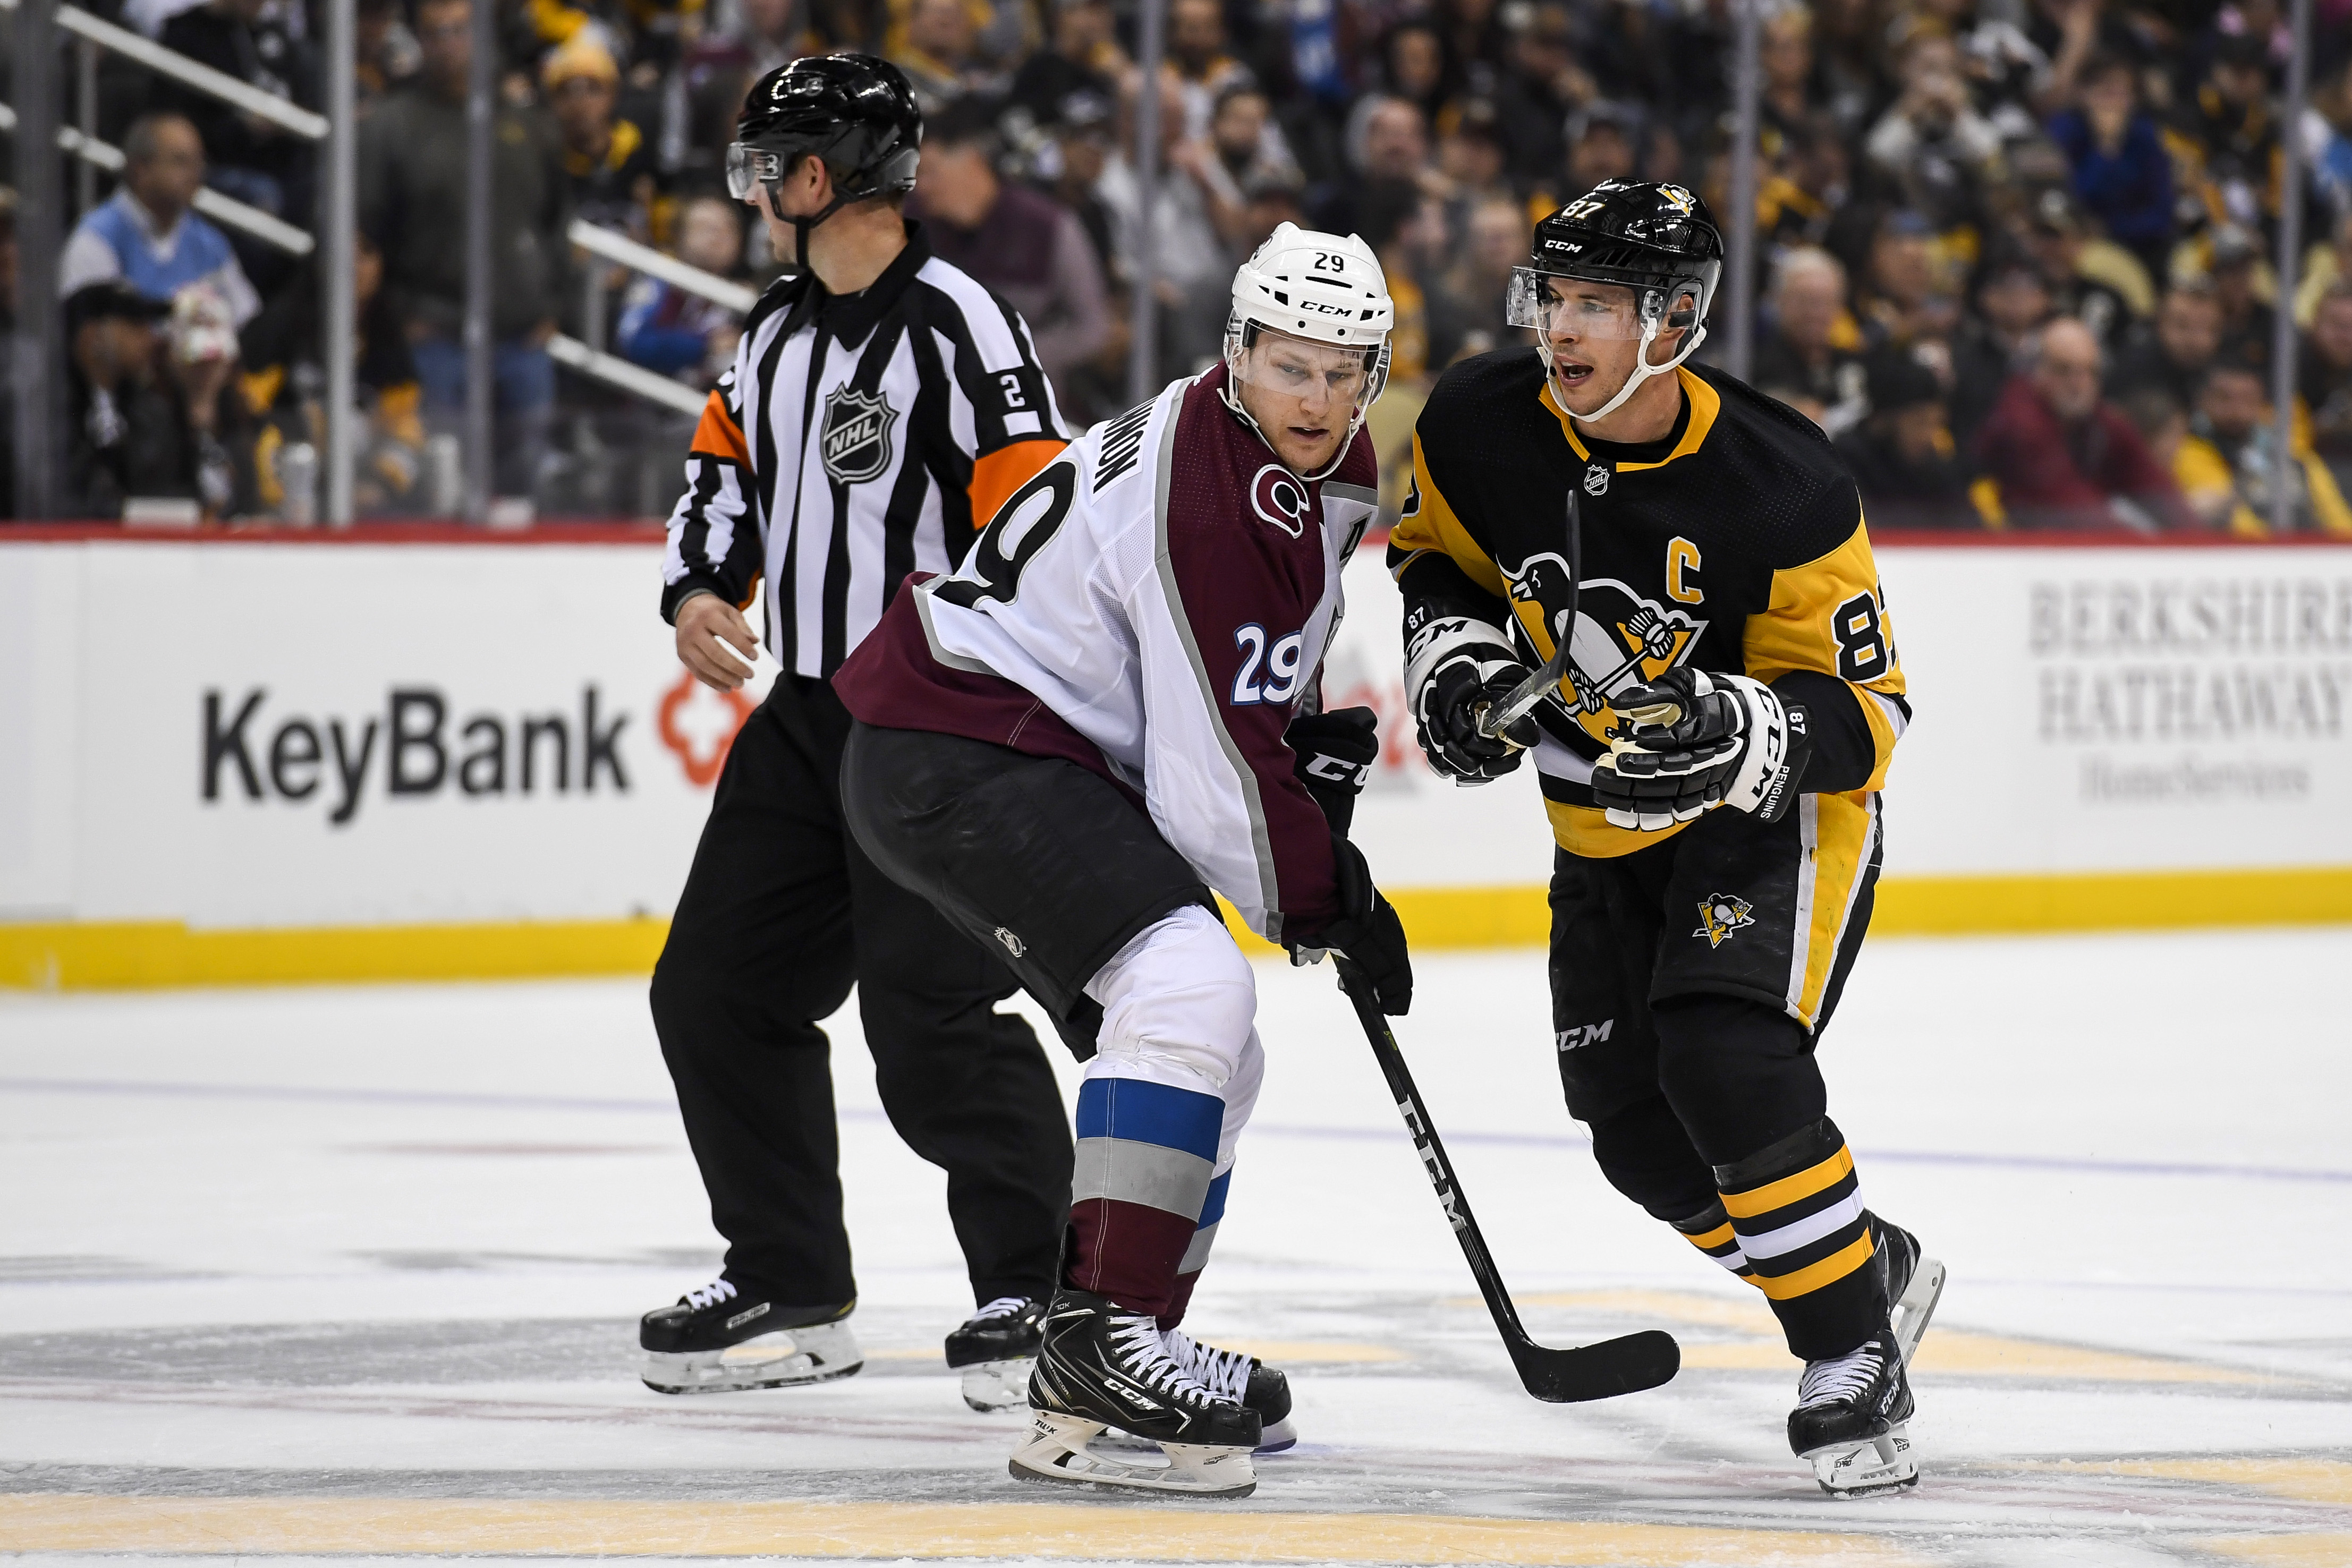 NHL: OCT 16 Avalanche at Penguins